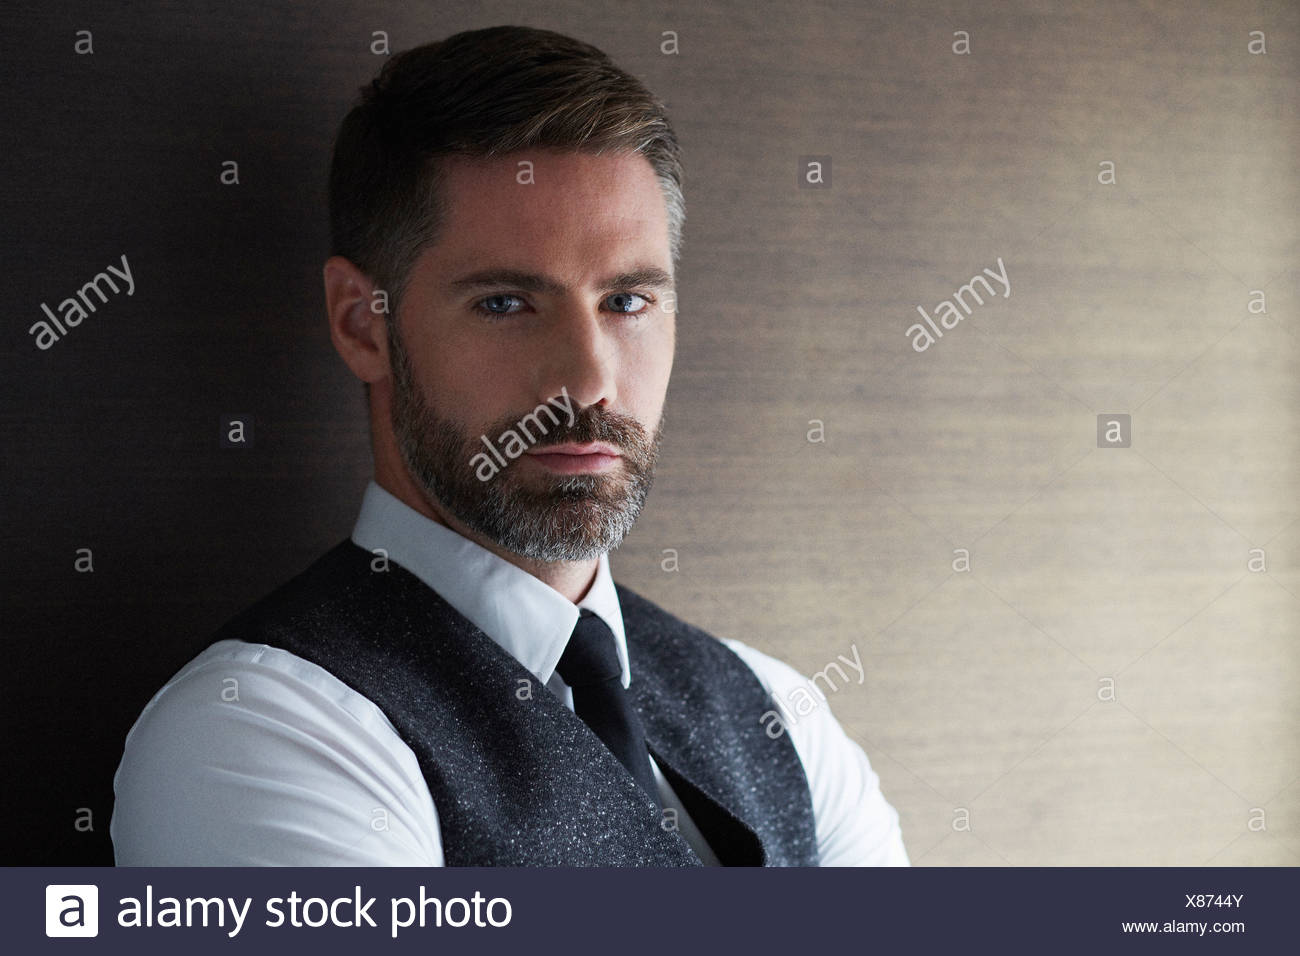 Portrait of businessman looking at camera - Stock Image